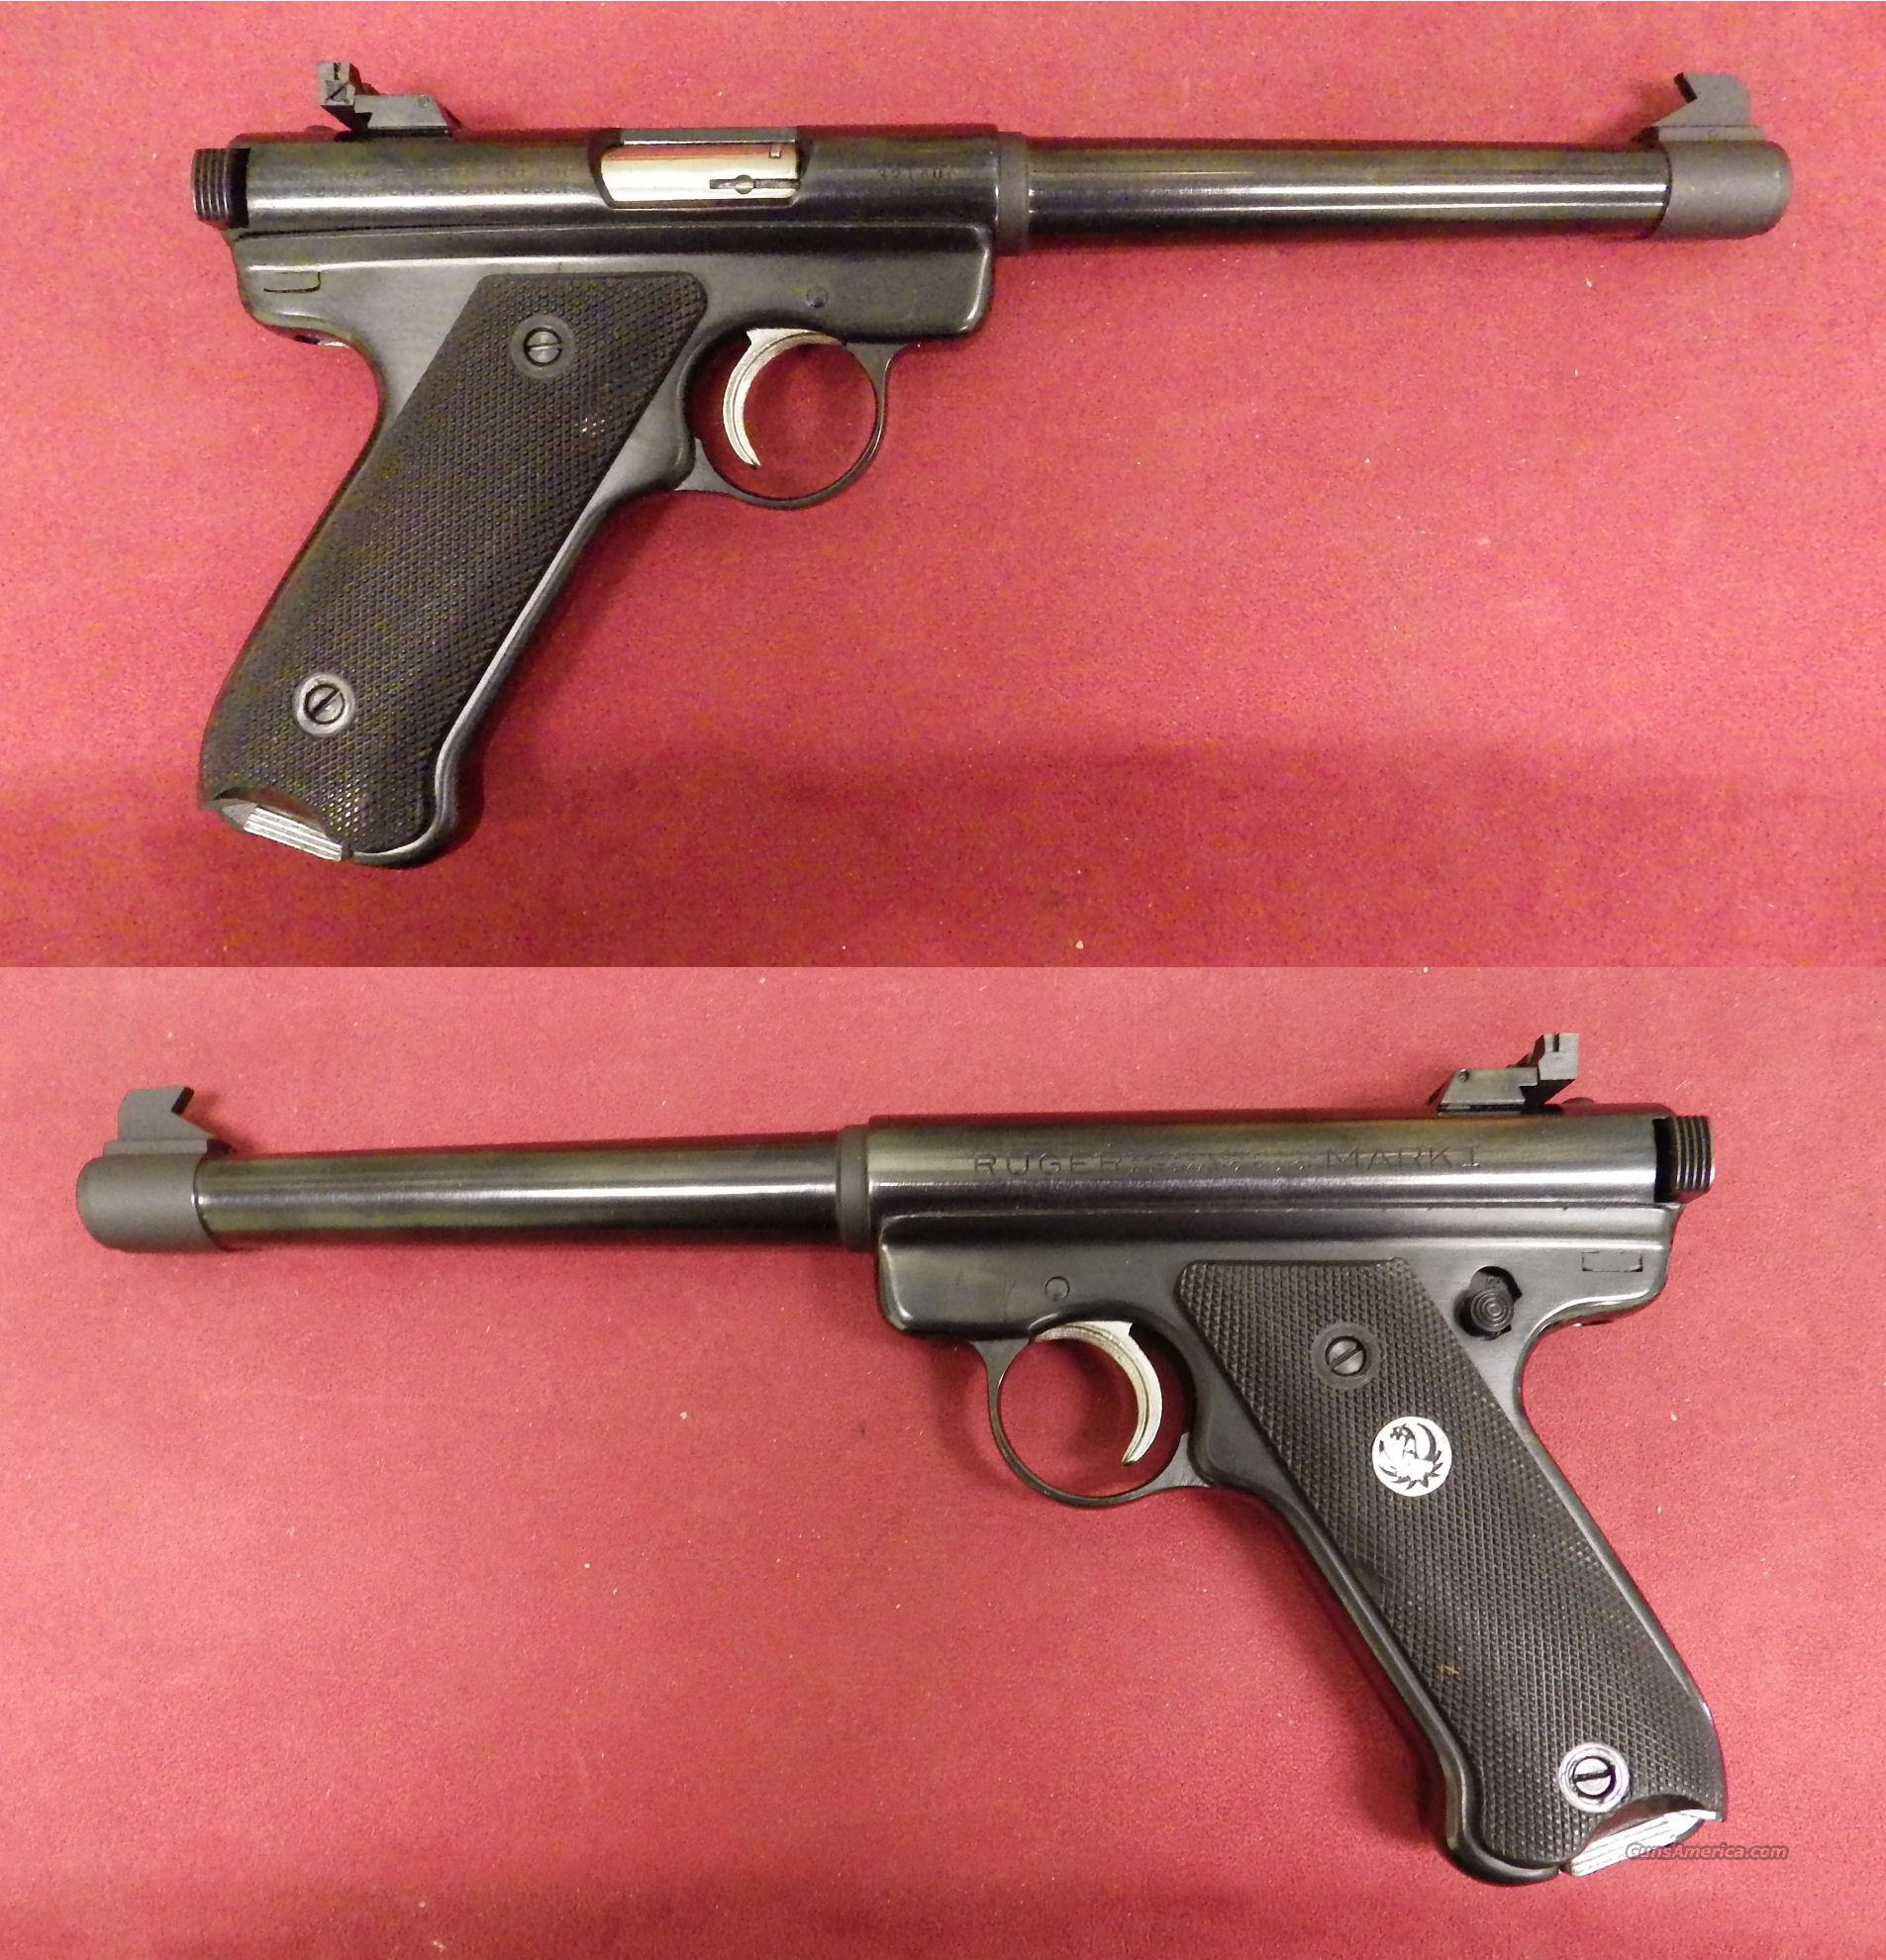 Ruger Mark I .22LR  *MUST CALL*  Guns > Pistols > Ruger Semi-Auto Pistols > Mark I/II/III/IV Family